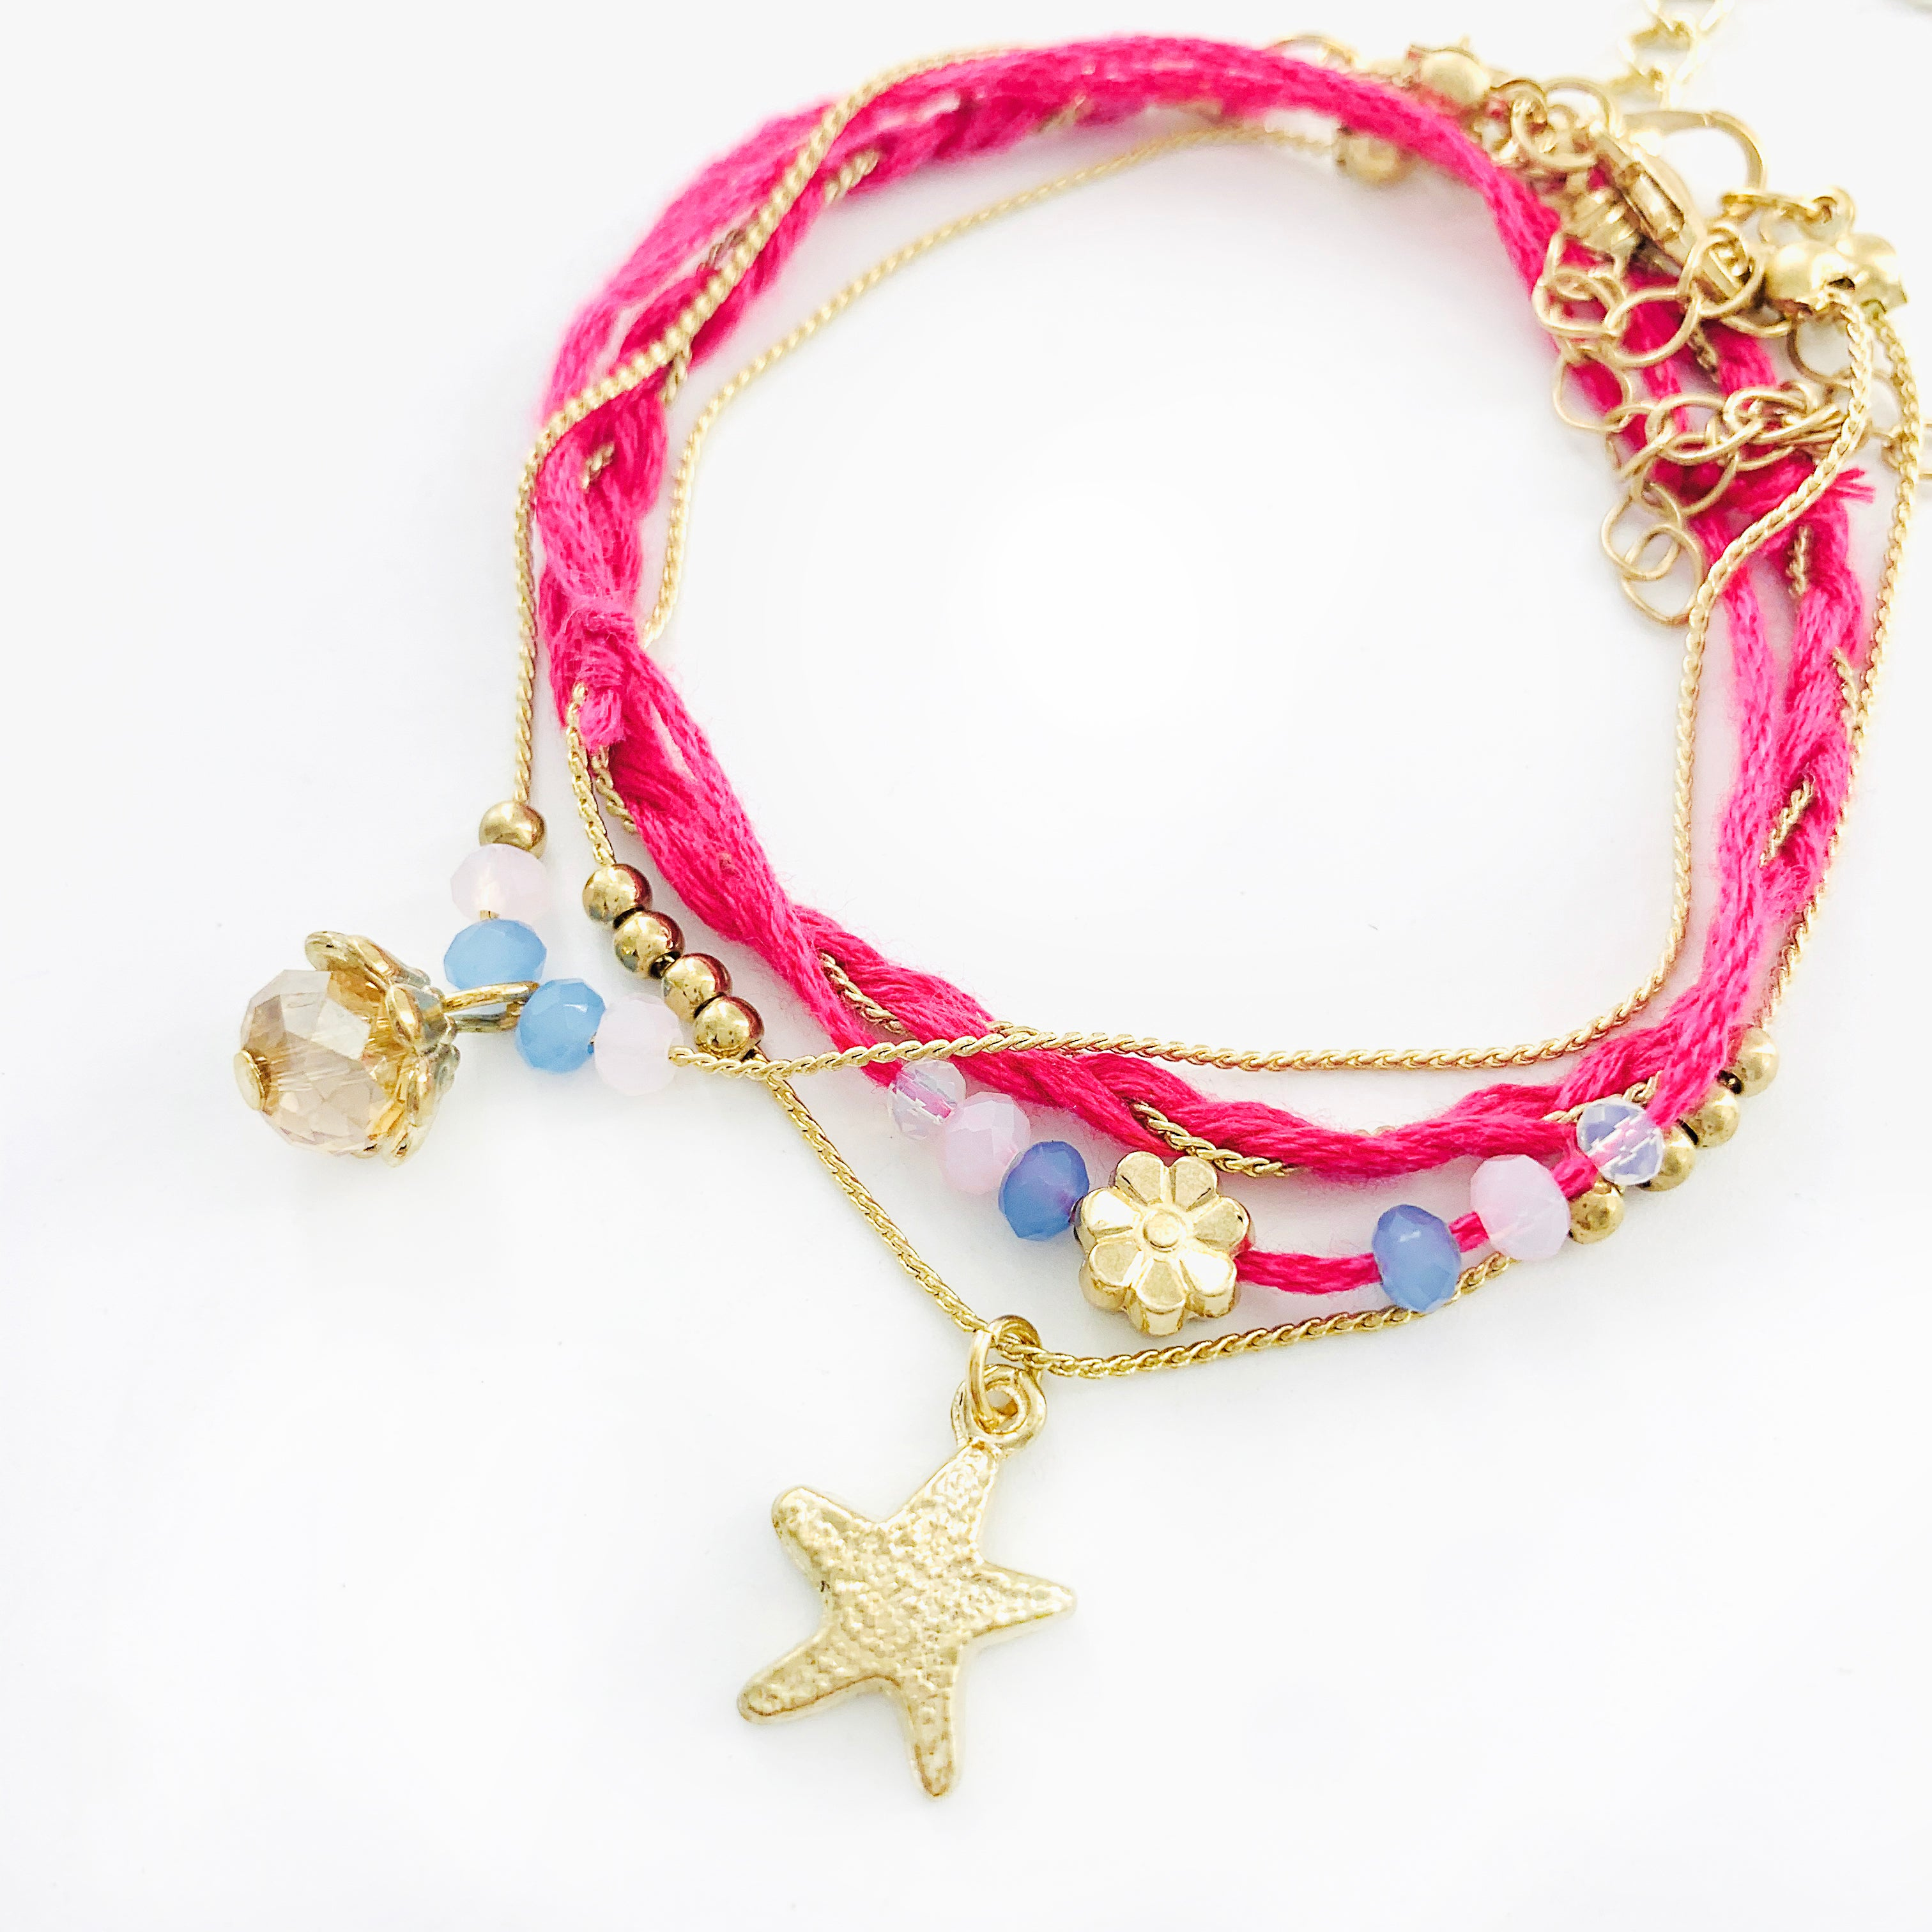 Pink string and chain bracelets with star and crystal charm